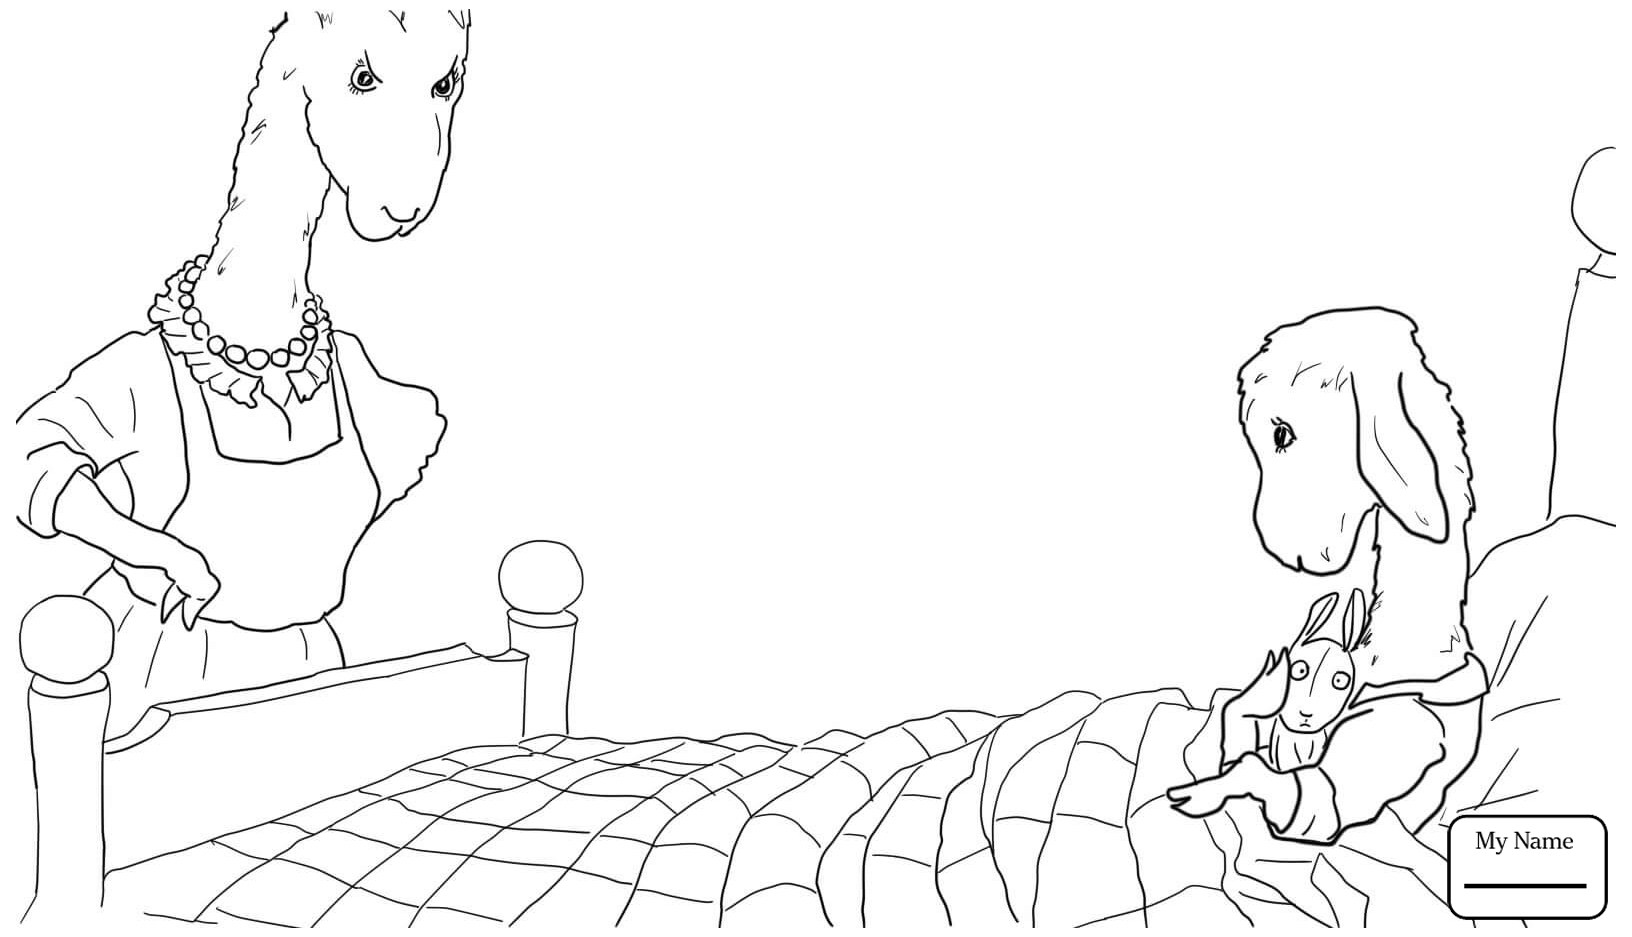 llama llama coloring page llama line drawing free download on clipartmag llama llama coloring page